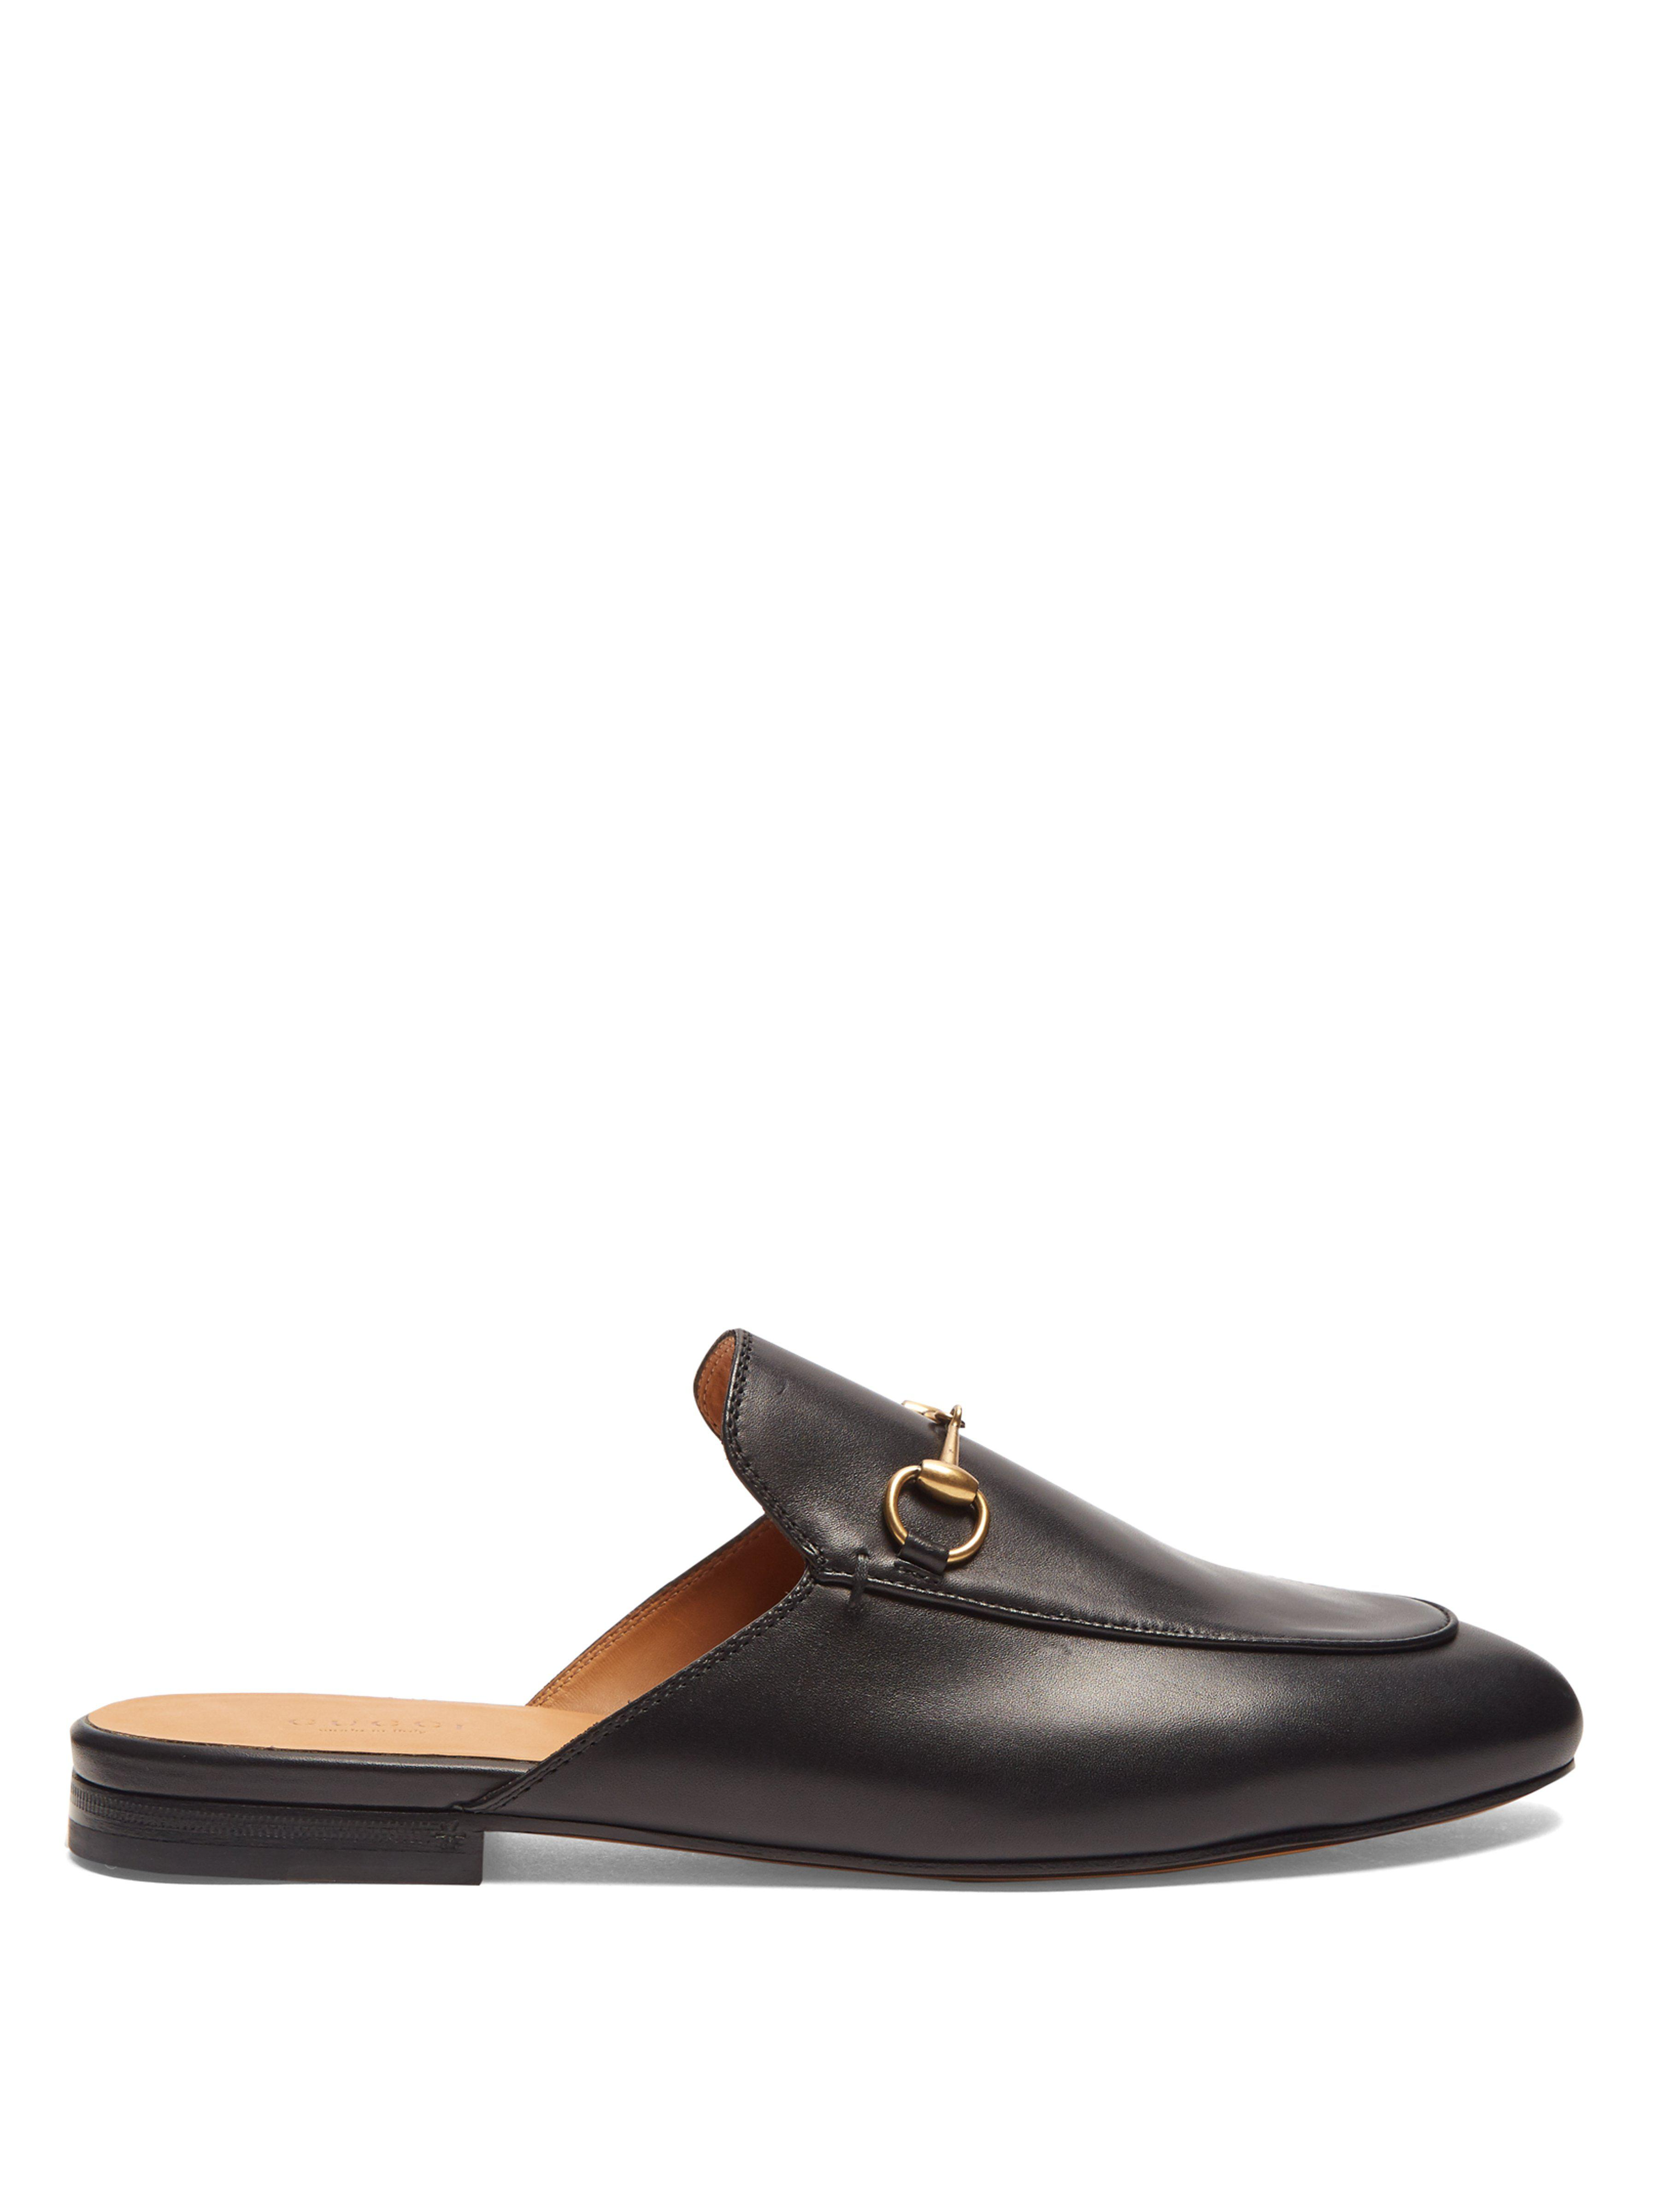 70da9b904f1 Gucci Princetown Leather Backless Loafers in Black - Save 16% - Lyst